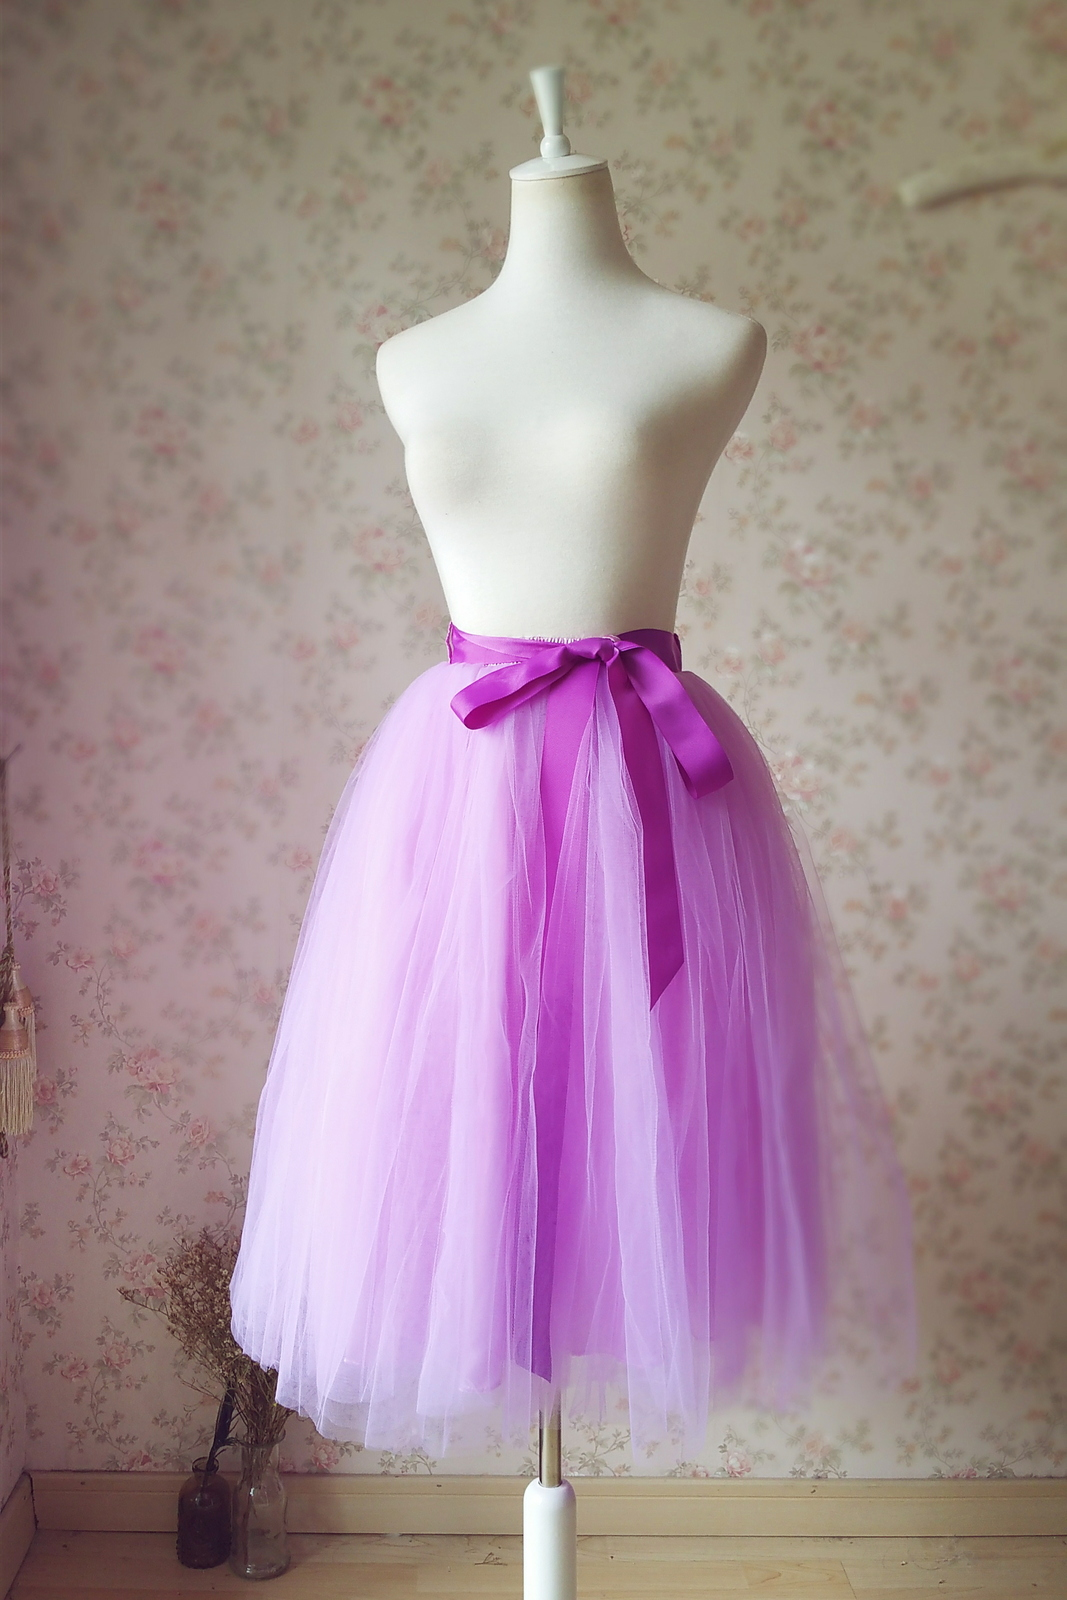 LIGHT PURPLE Tea Length Midi Skirt Elastic Waist Plus Size Princess Tulle Skirt